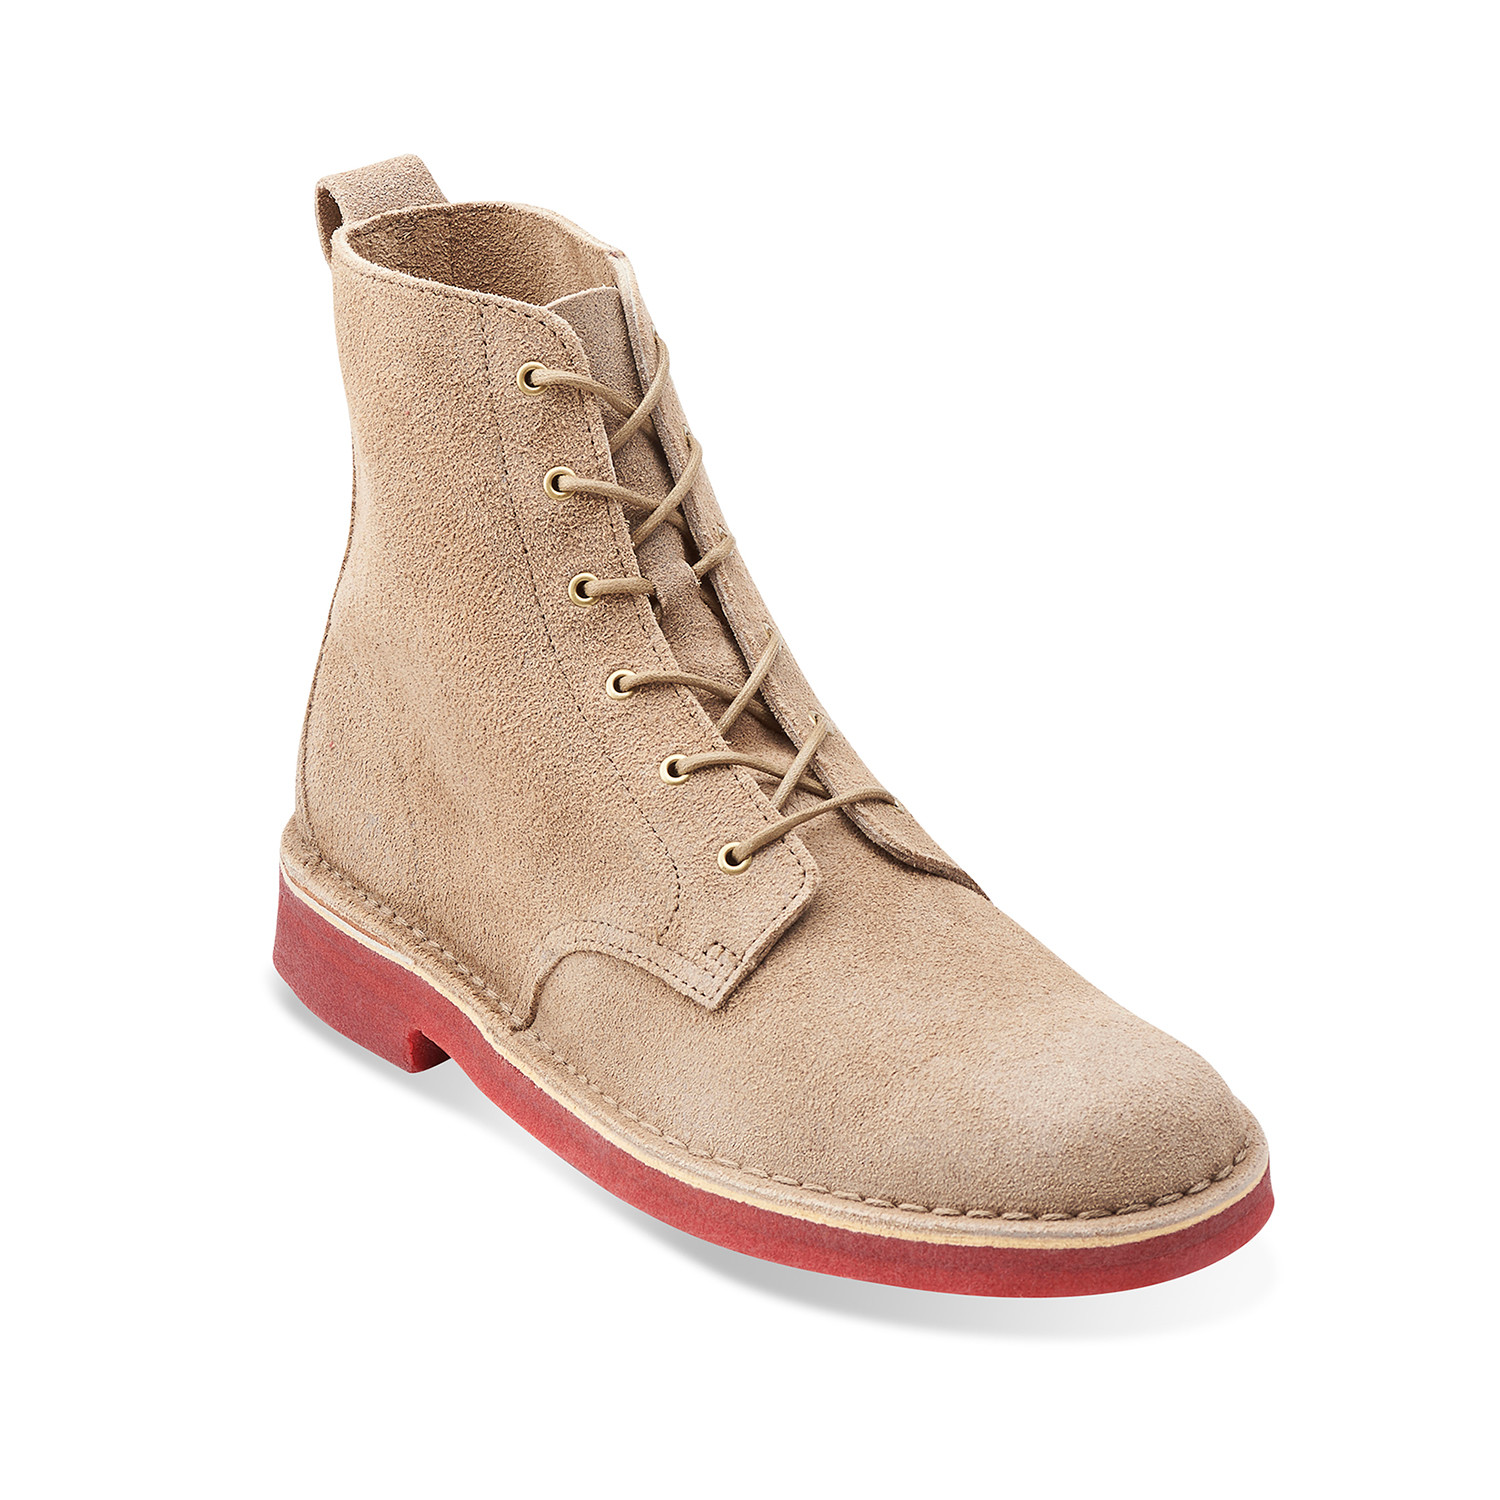 desert mali boot taupe distressed us 9 clarks touch of modern